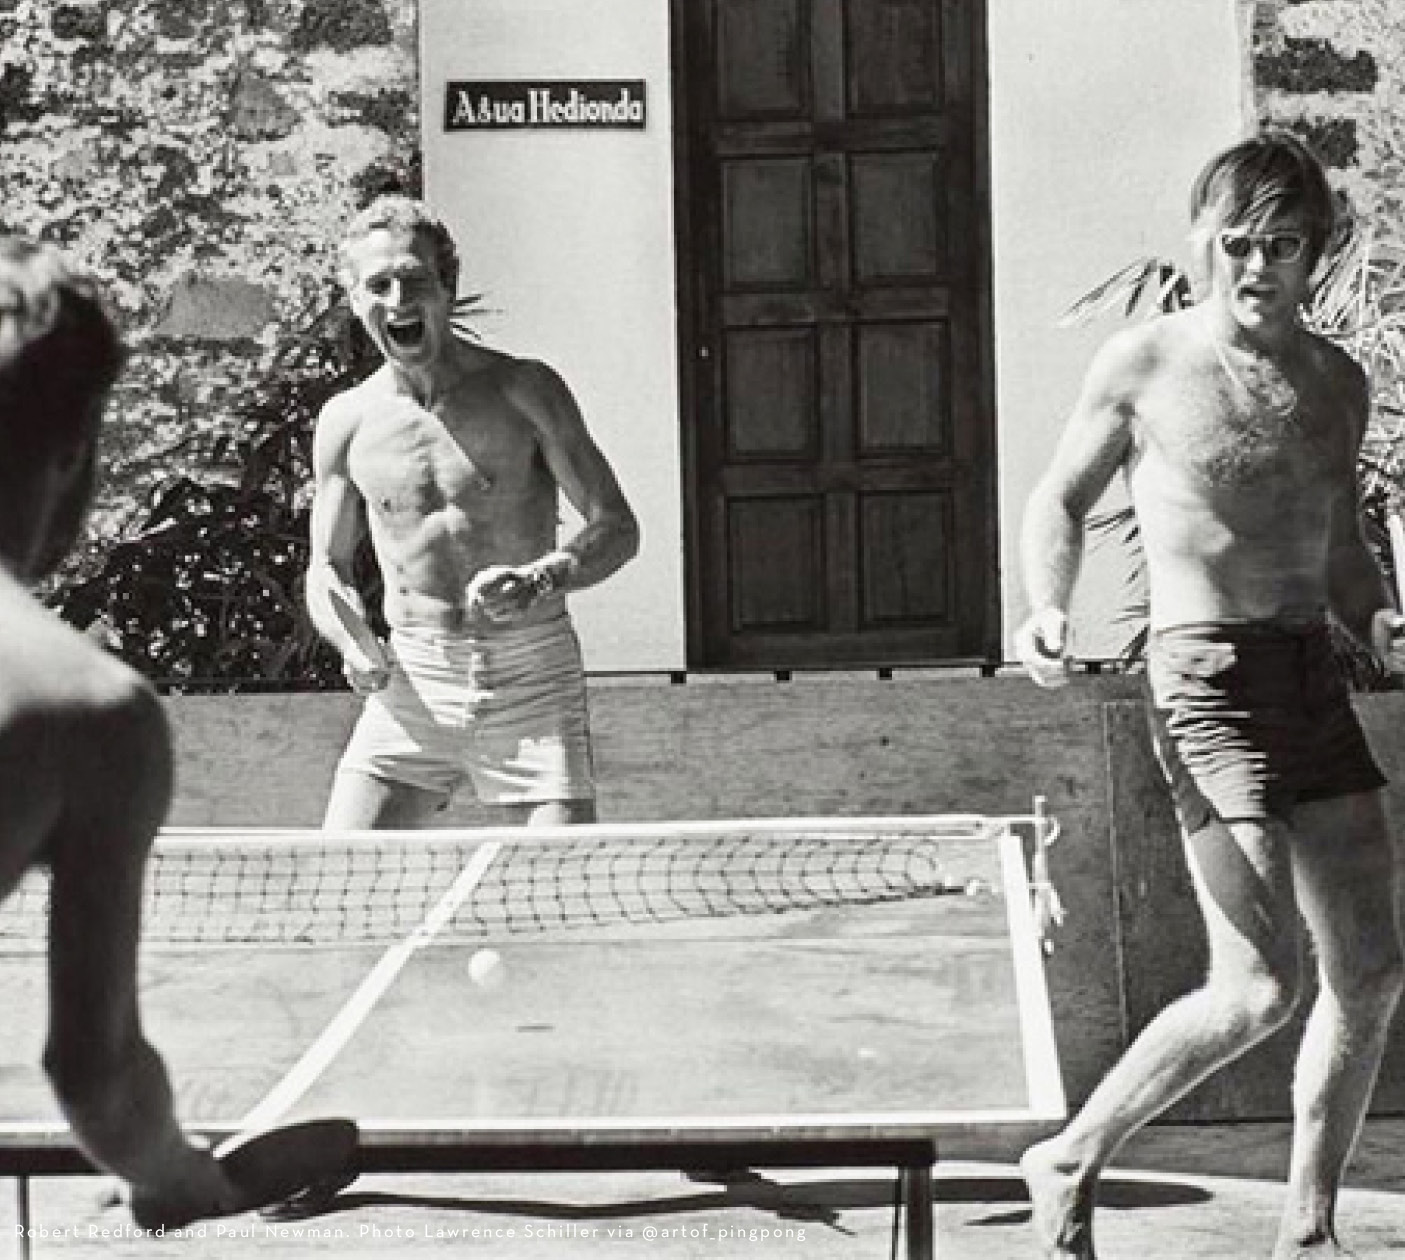 Robert Redford and Paul Newman playing Ping Pong